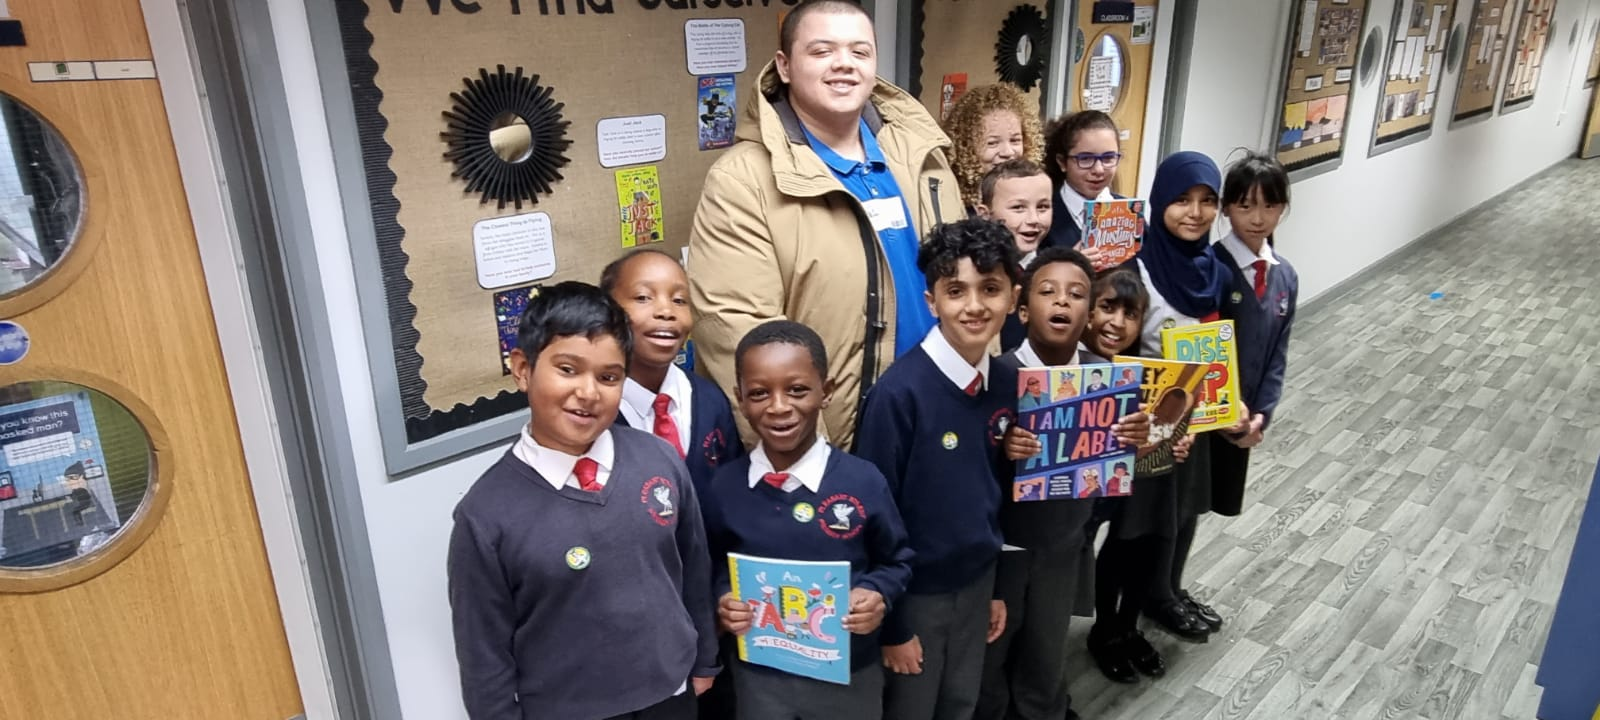 Wade Holligan poses with students from Pleasant Street Primary School. They hold up books from the collection in front of them.